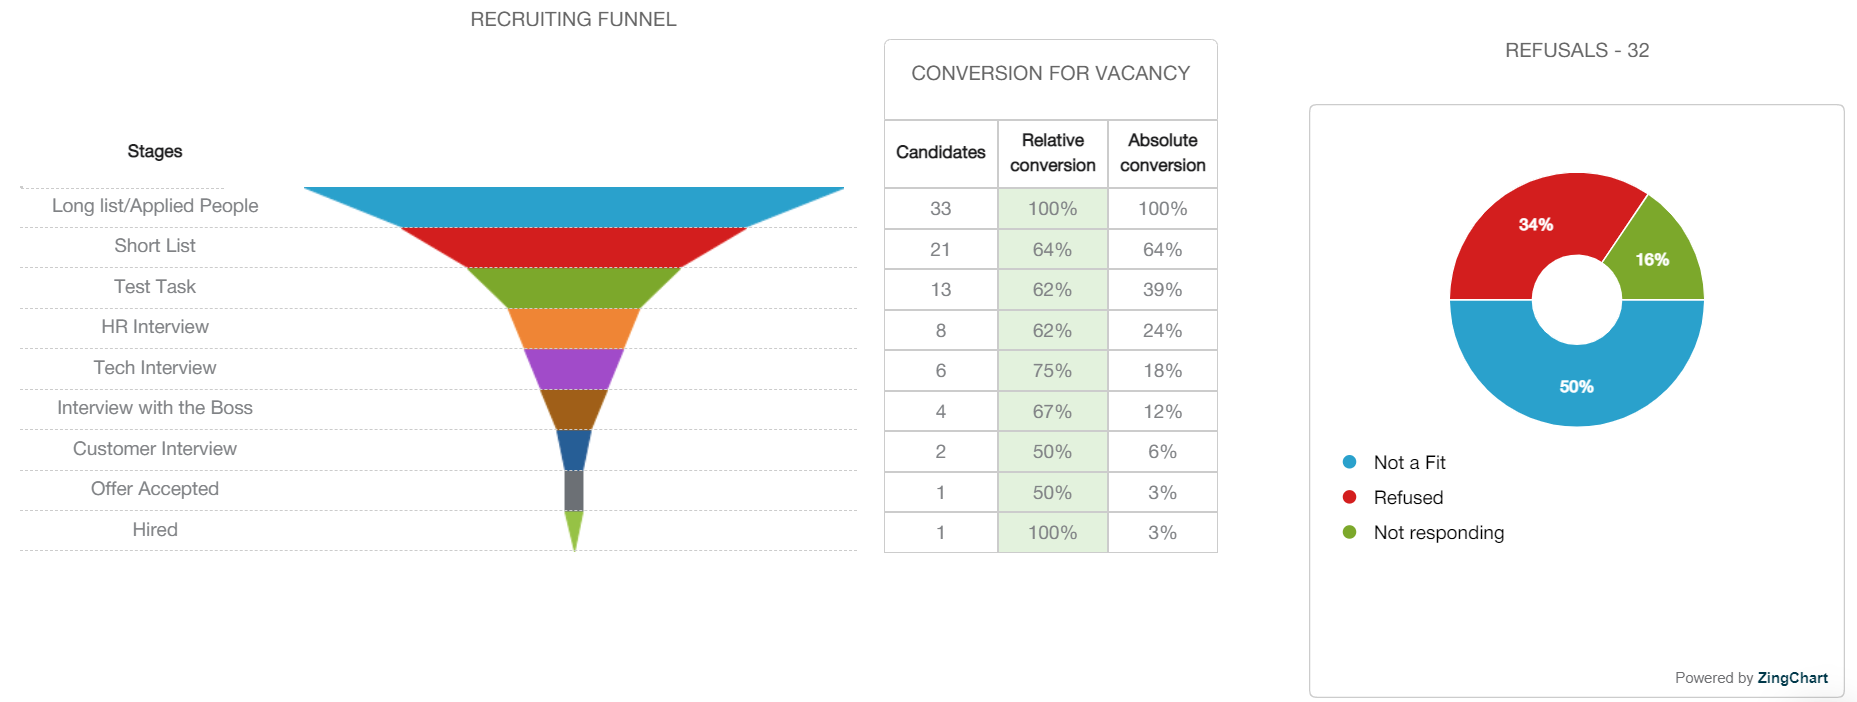 voronka 2 2 - Refusal reasons in the Vacancy report and other improvements